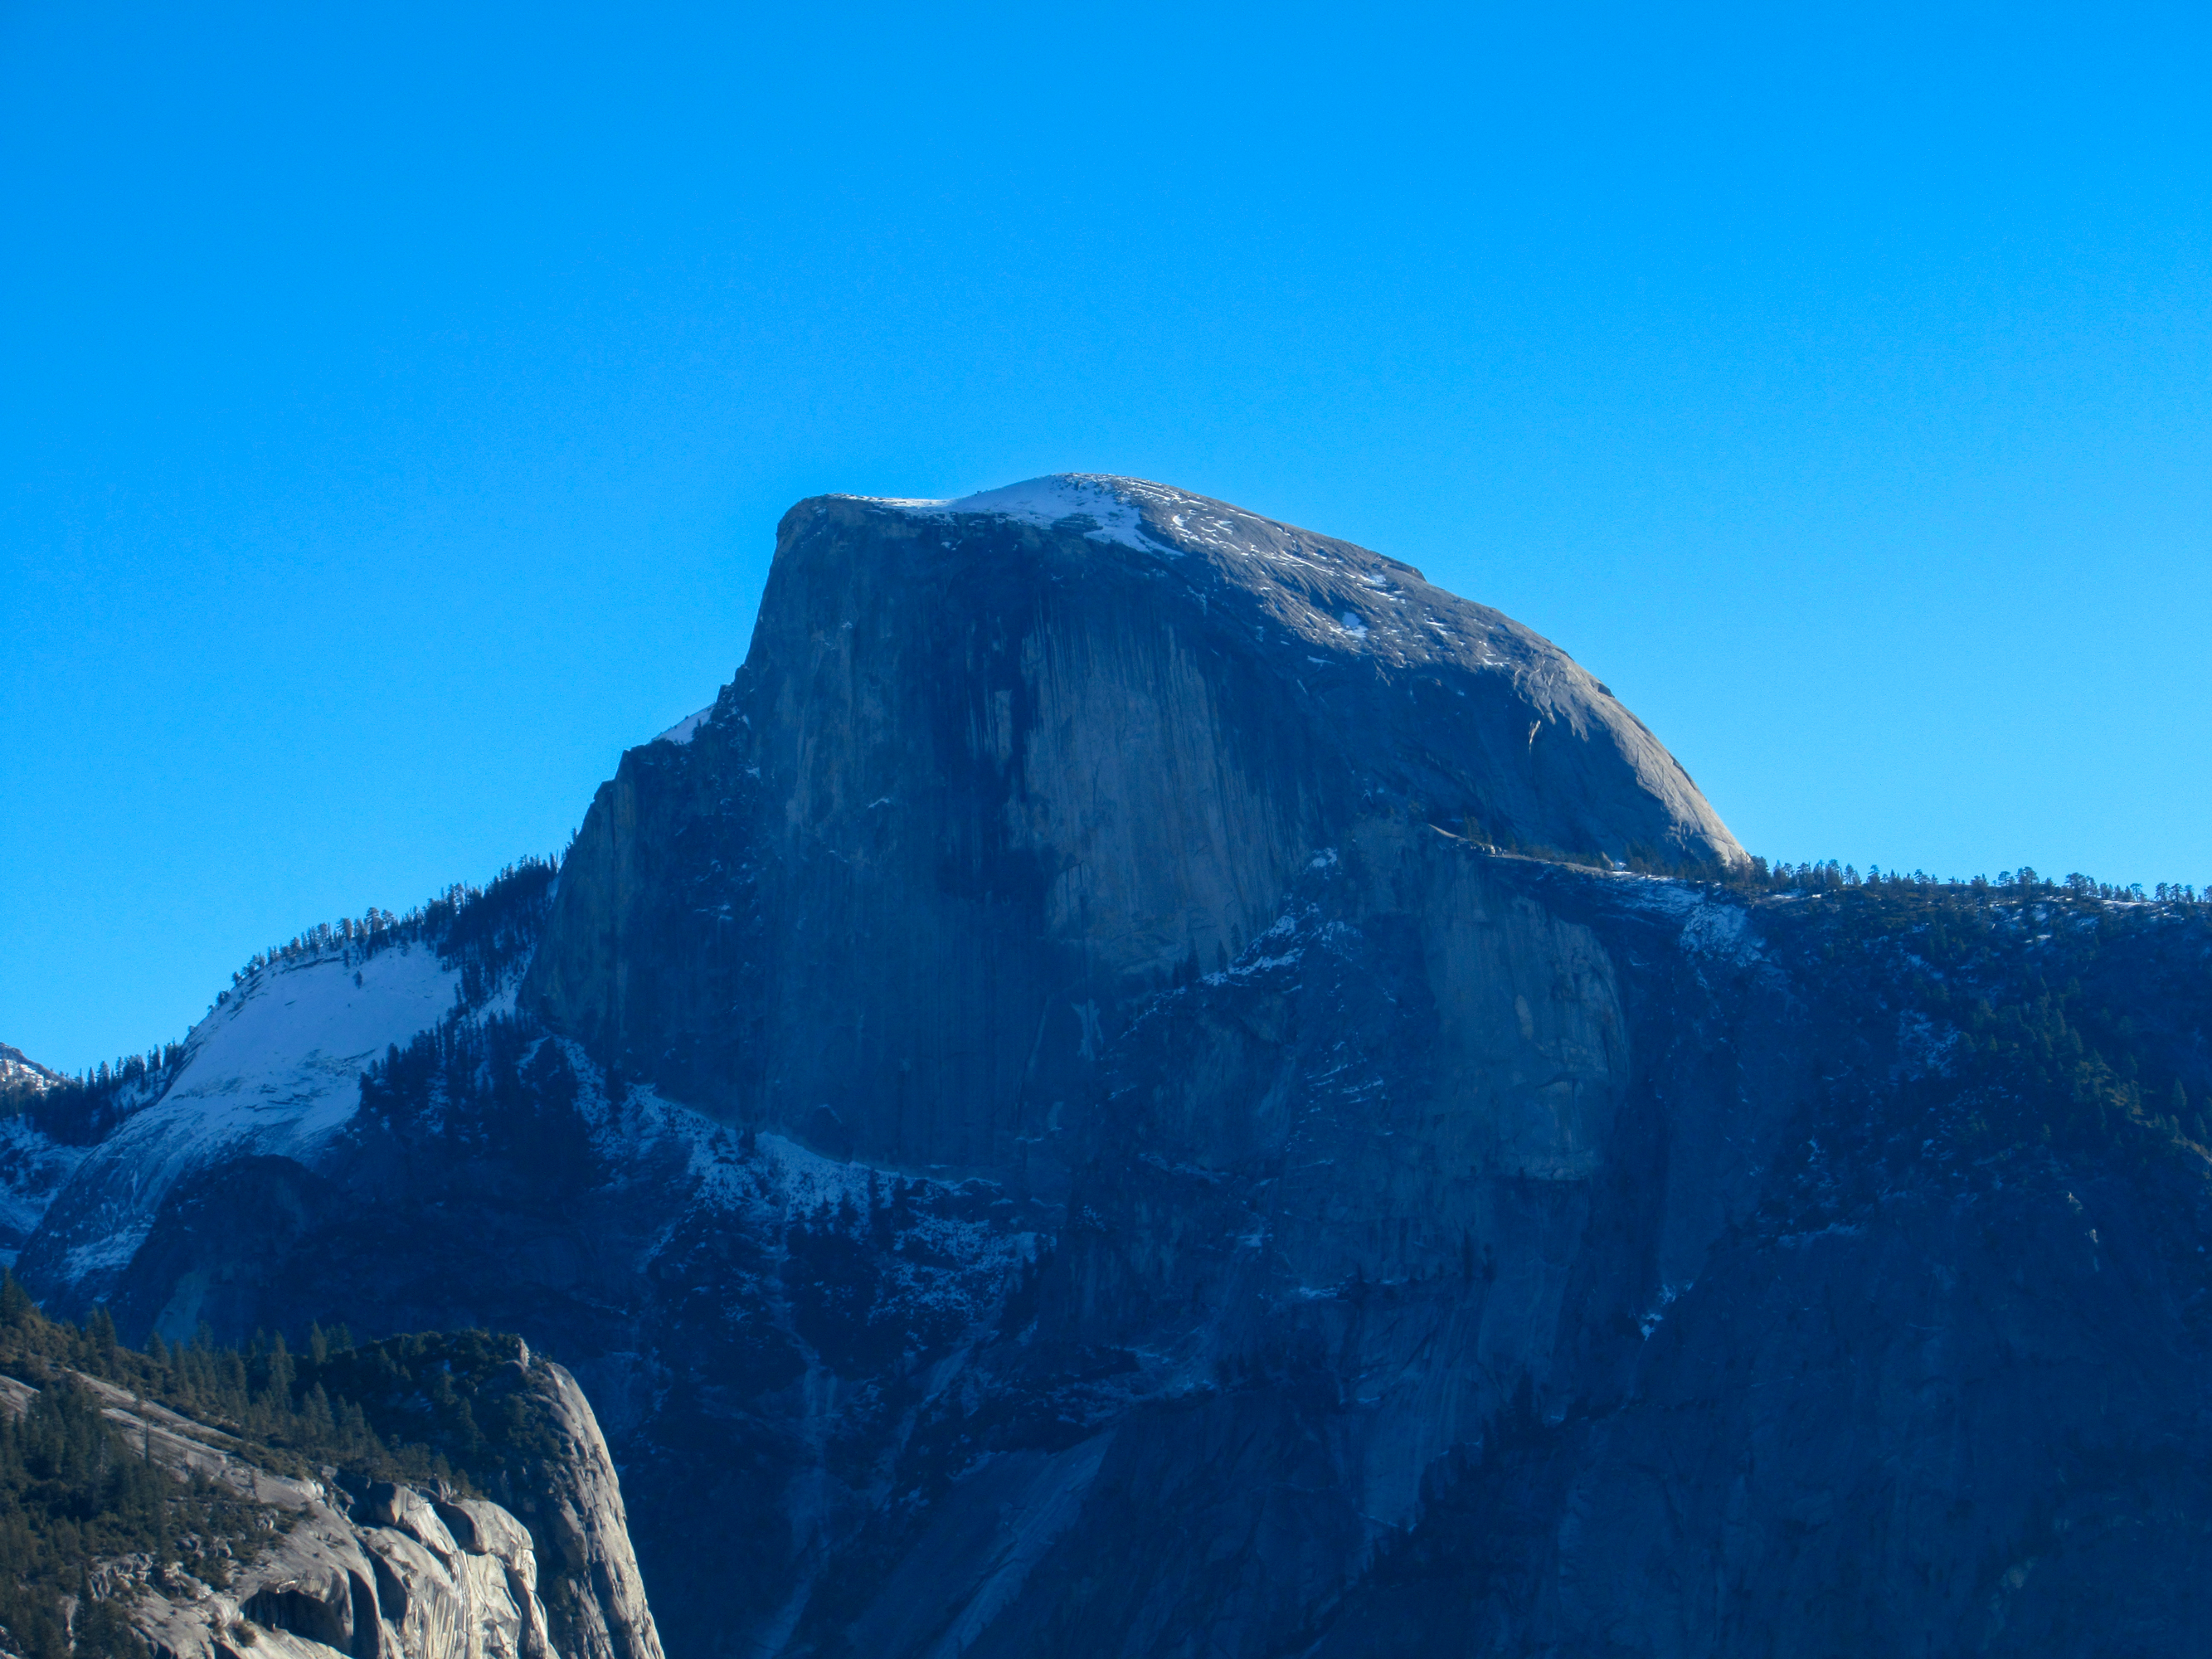 The morning sun shines on the back of Half Dome.